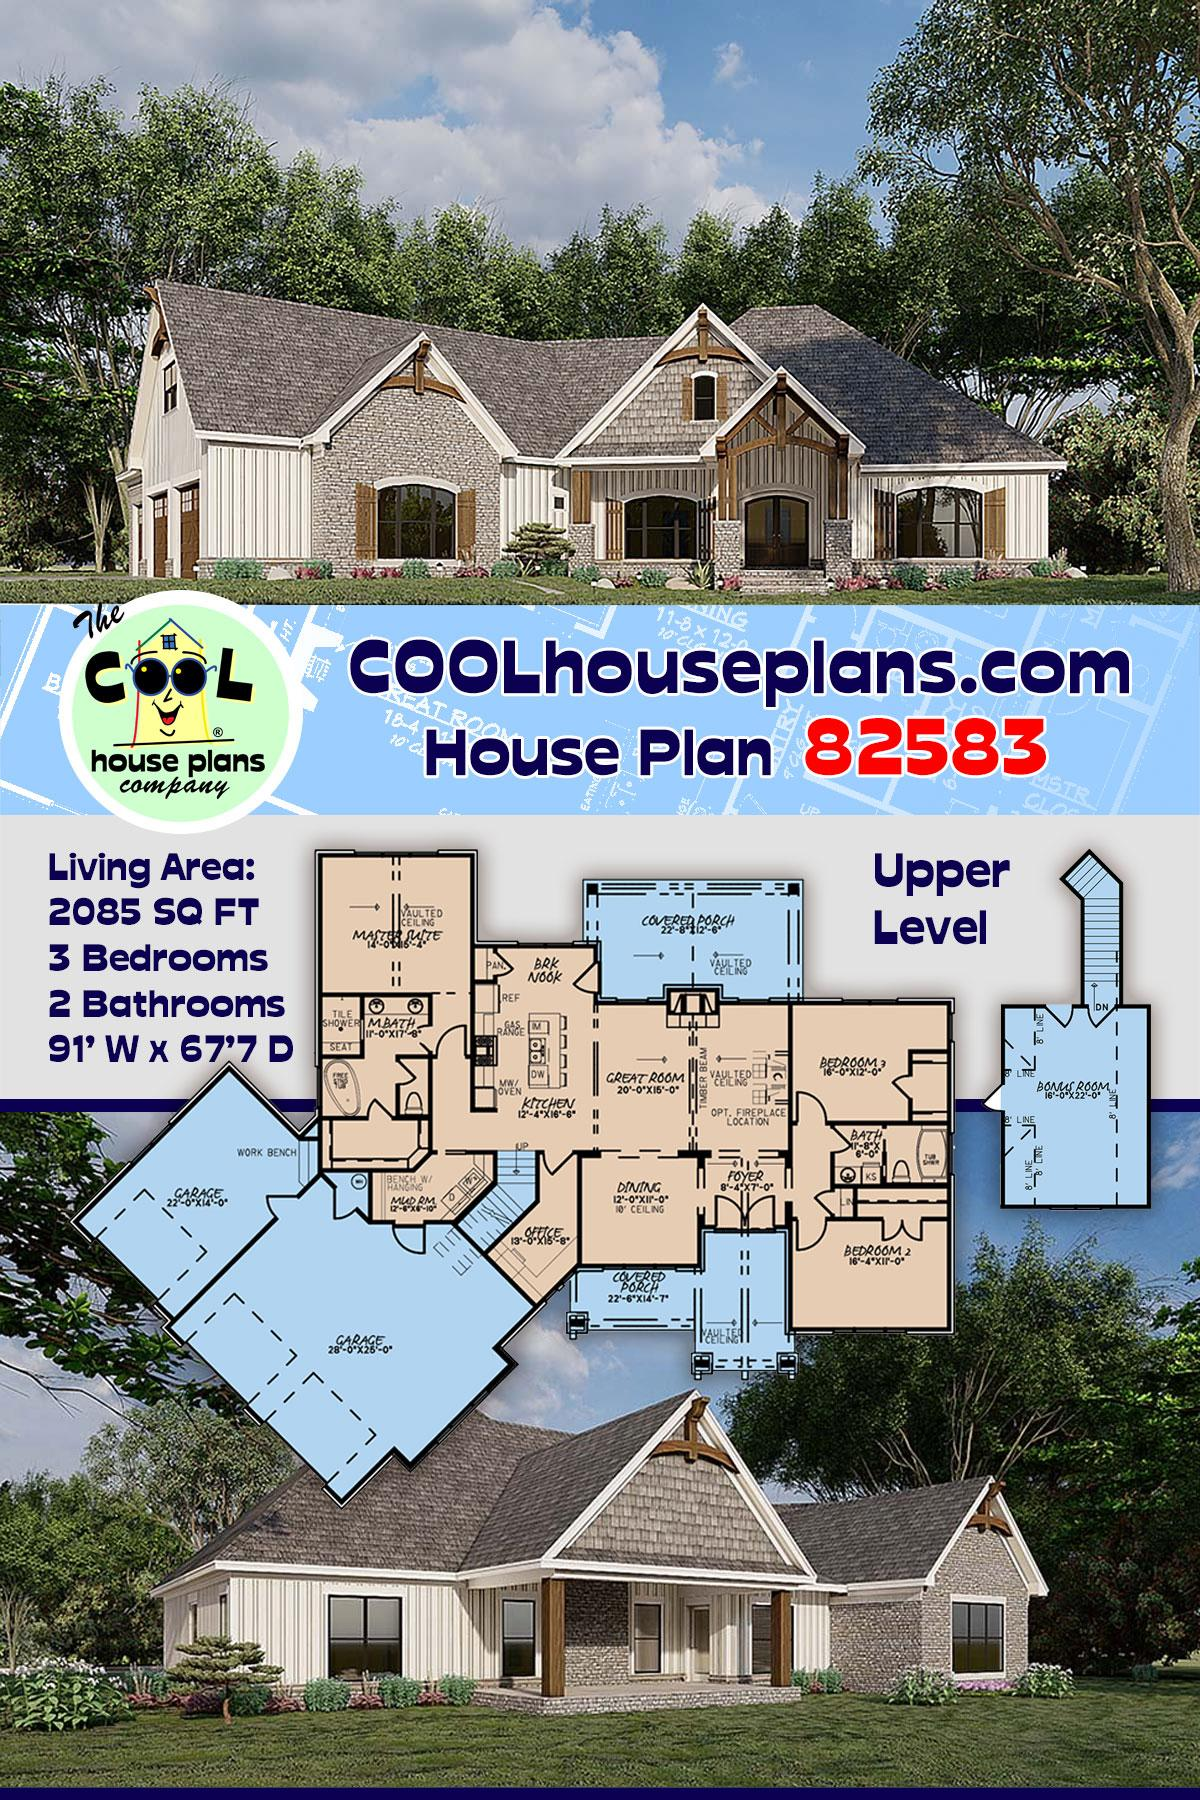 Bungalow, Craftsman, French Country House Plan 82583 with 3 Beds, 2 Baths, 3 Car Garage